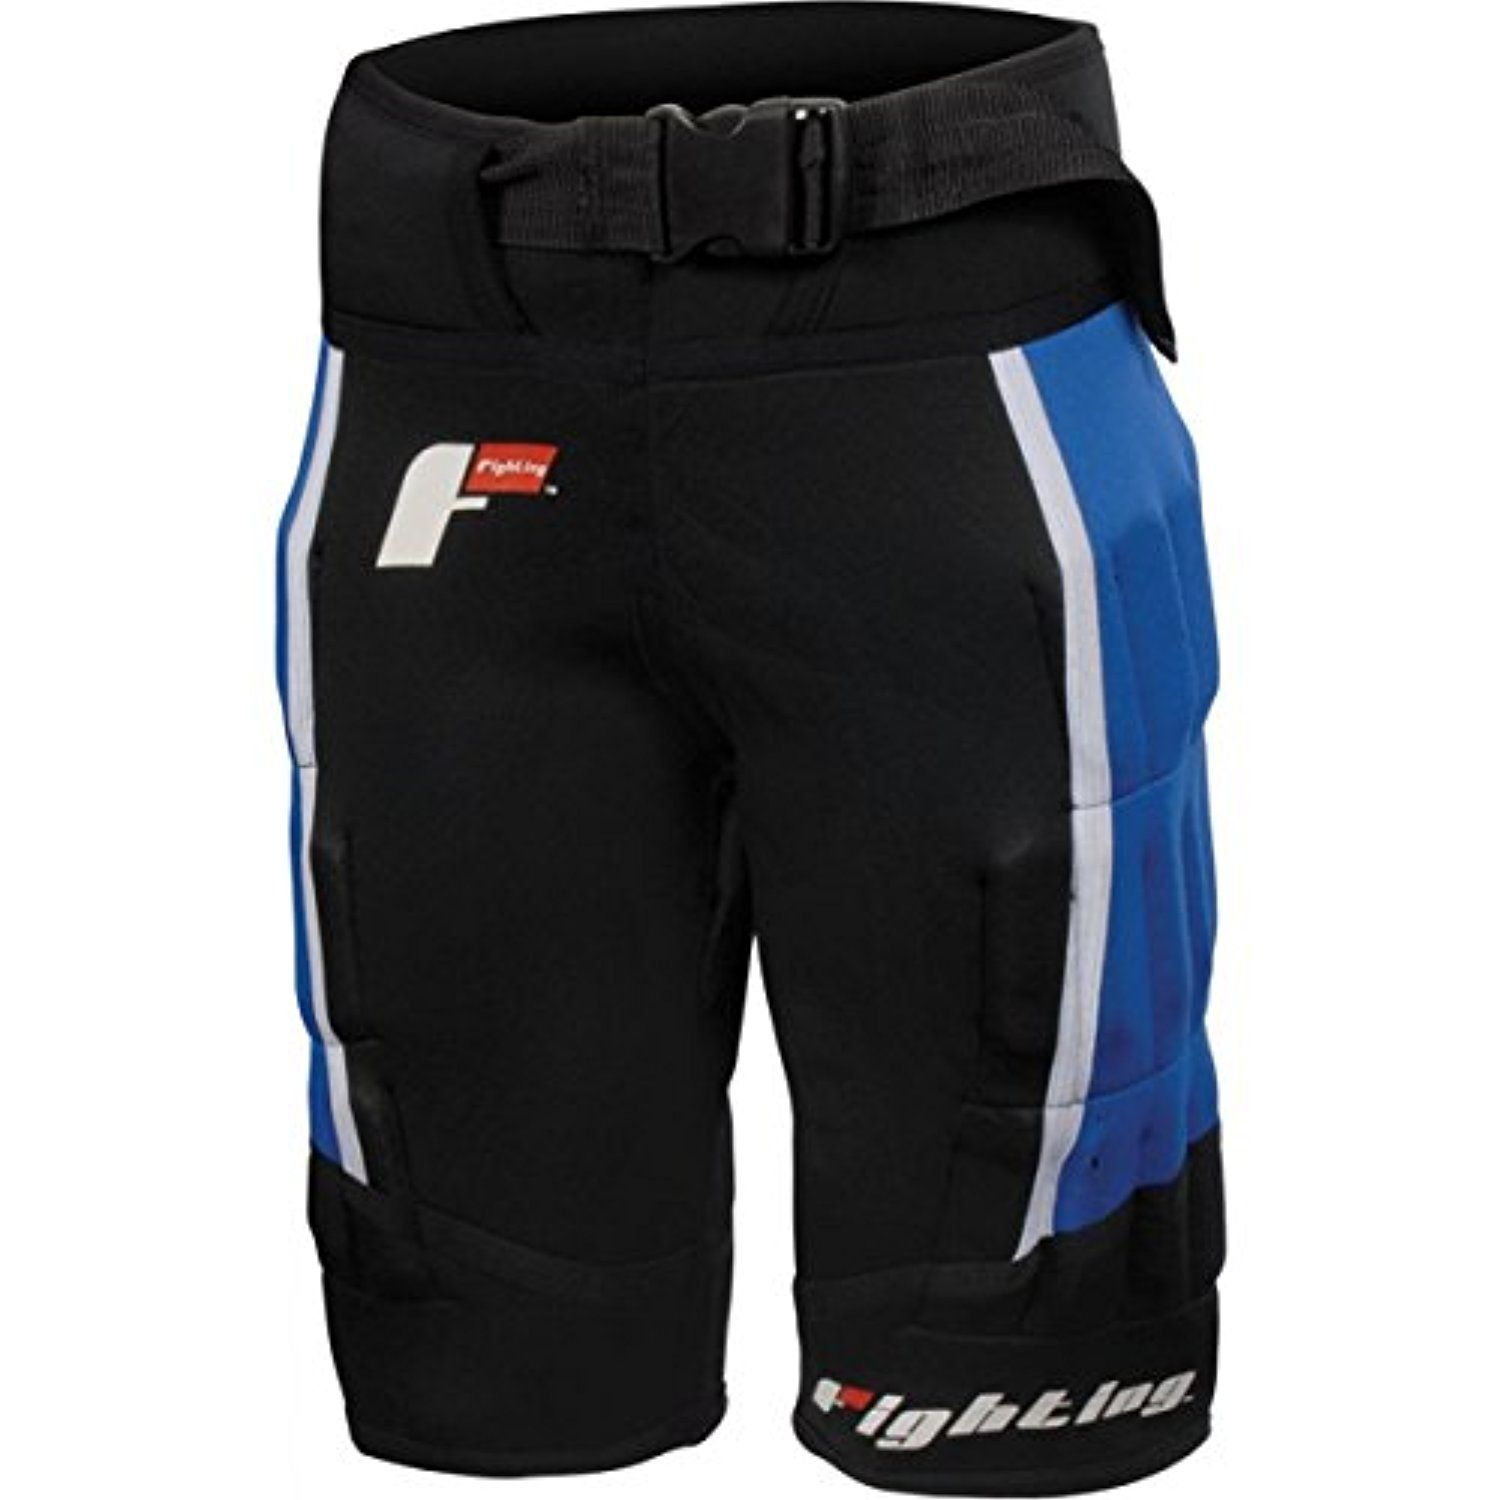 Fighting sports power weighted shorts 20 lbs you can